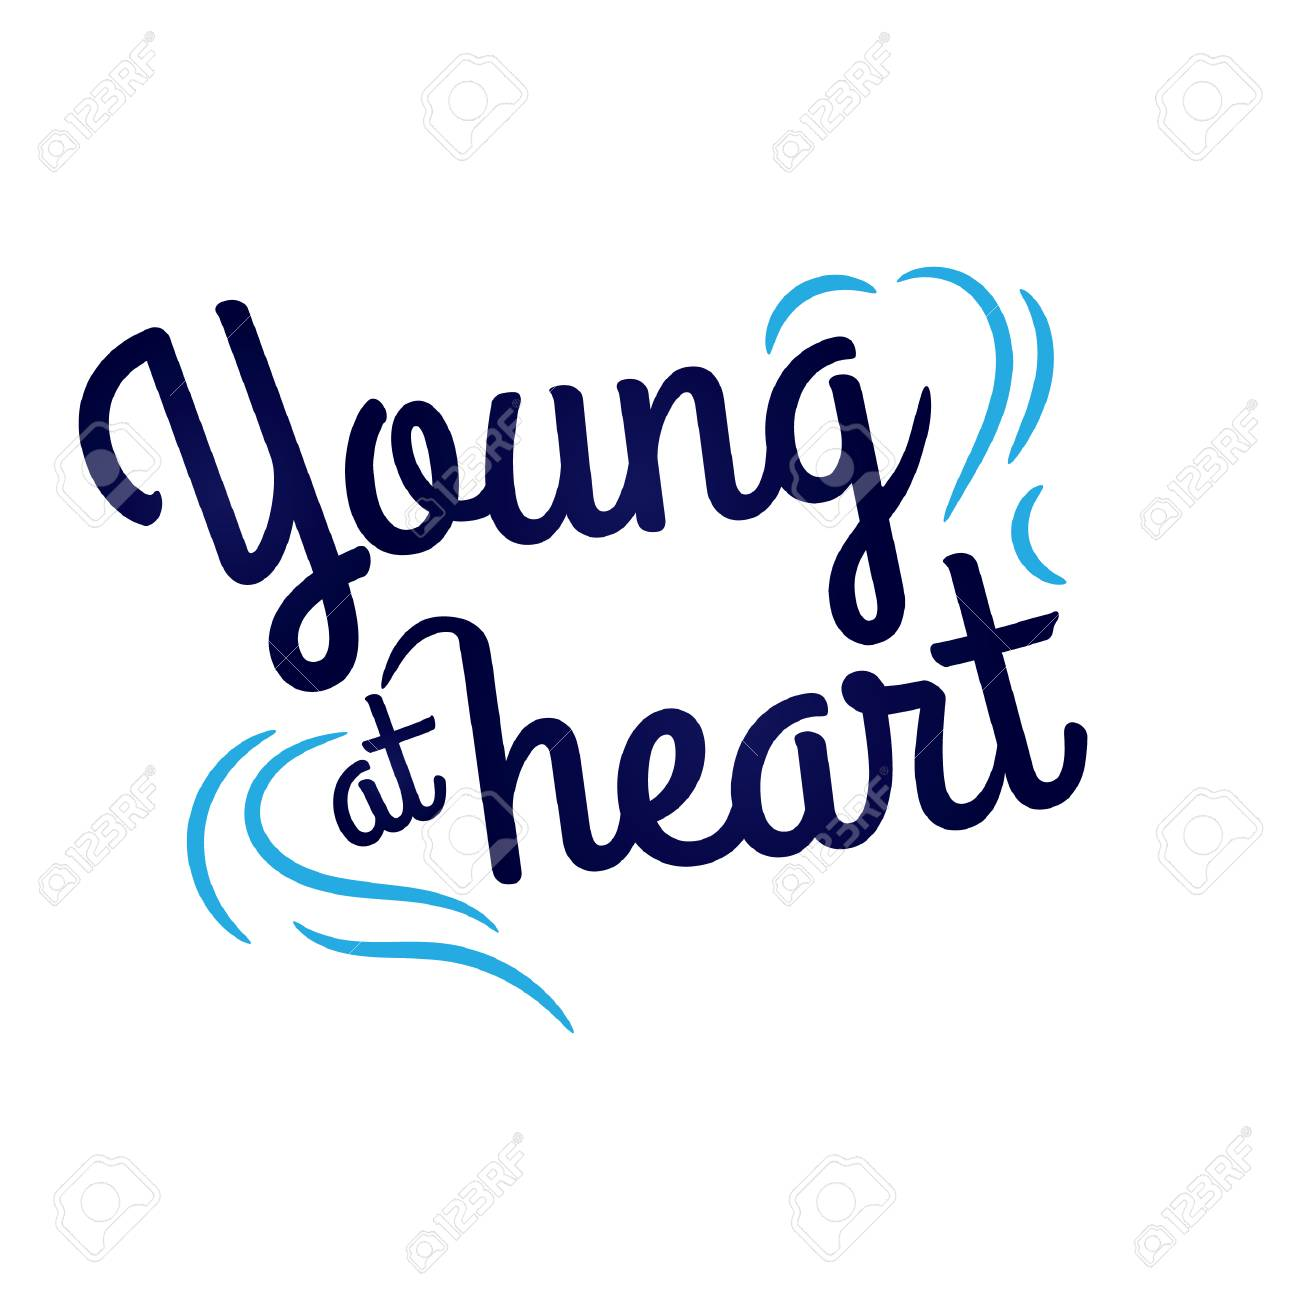 Young at heart quote design.